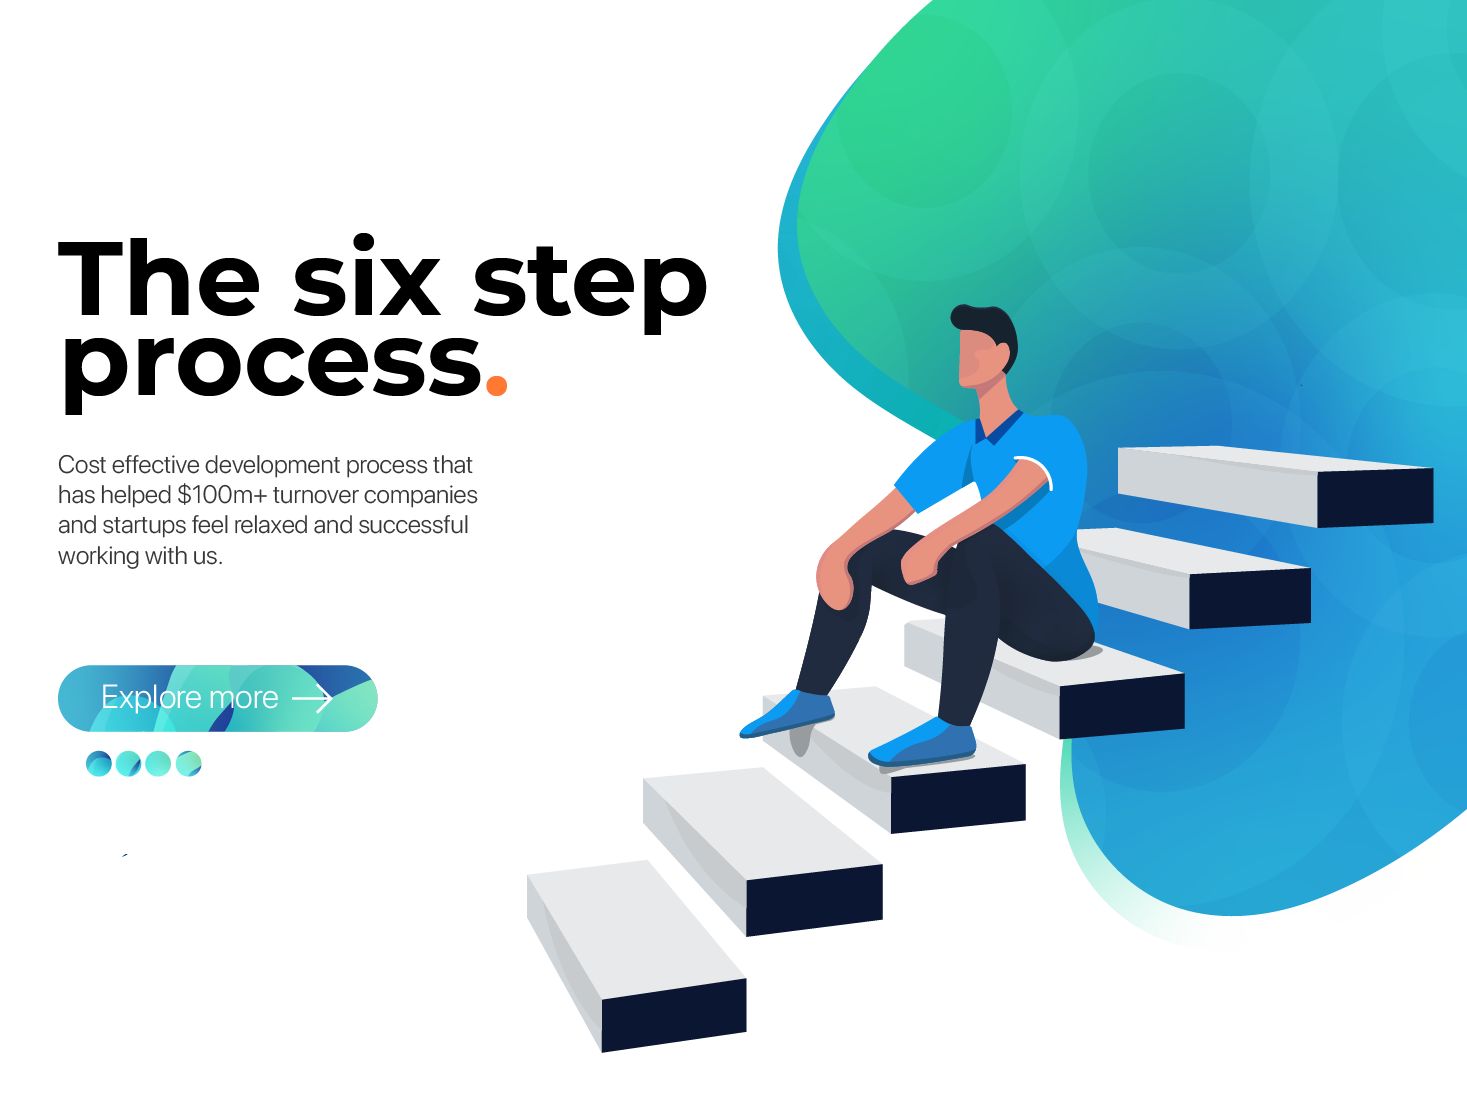 Six Step Process stairs human process landing page landingpage website ux design ui design uidesign uxdesign ux uiux ui illustration